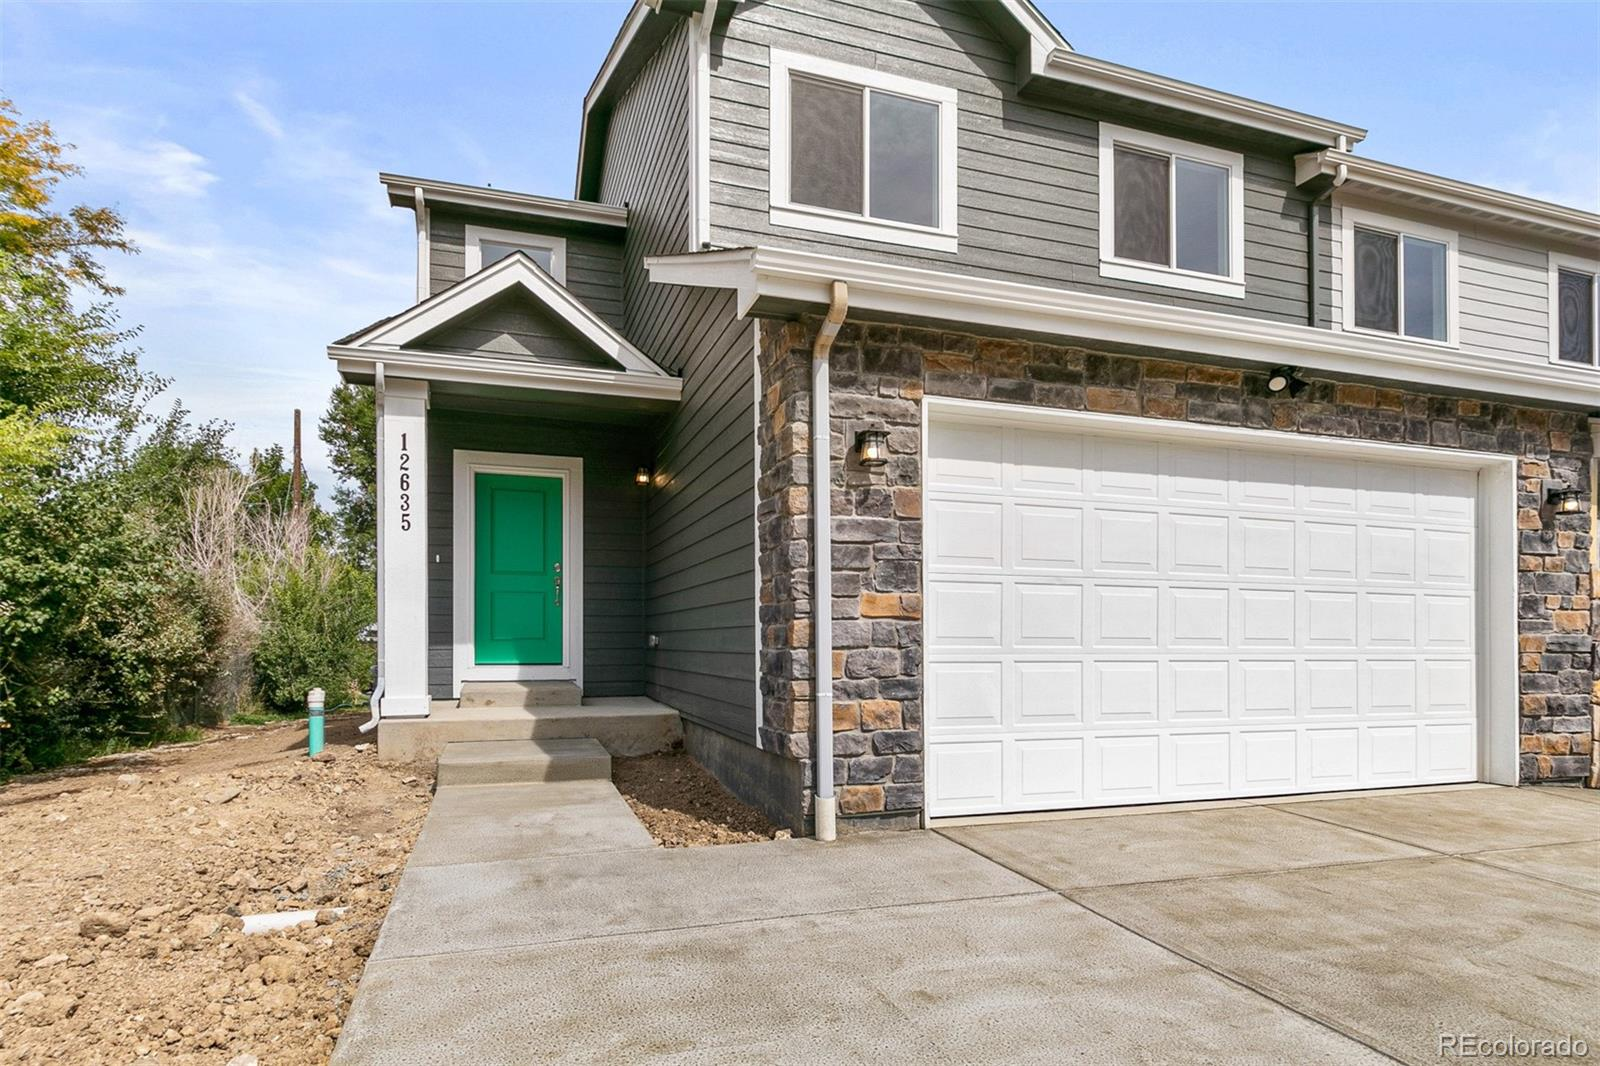 MLS# 6759806 - 1 - 12635  W 10th Avenue, Golden, CO 80401